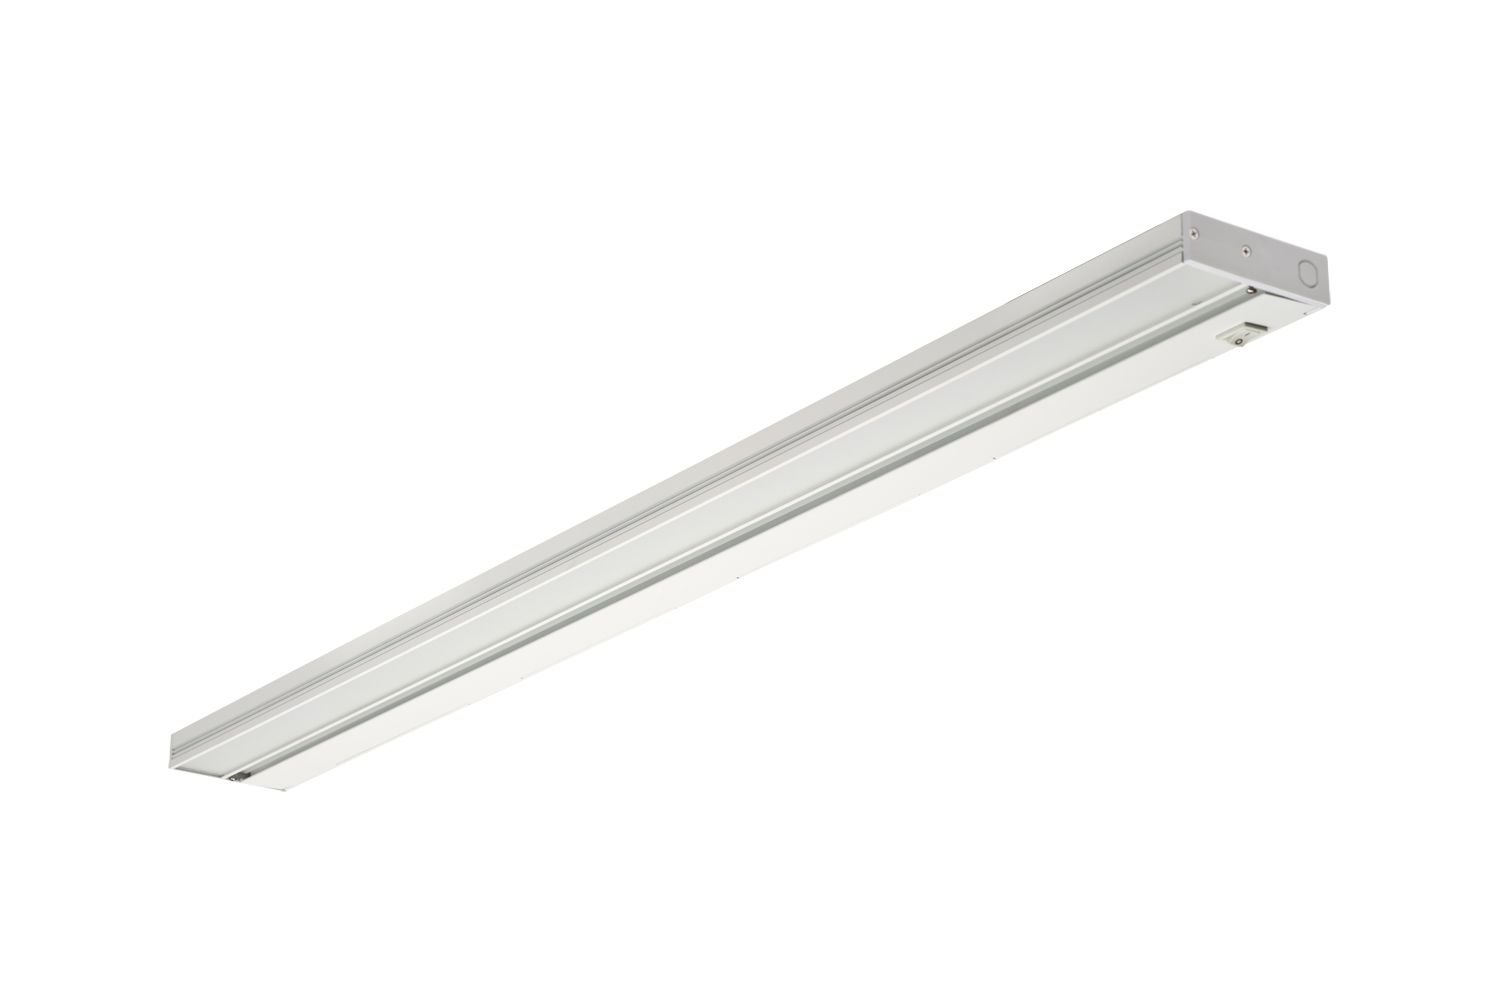 NICOR Lighting Slim 40-Inch Dimmable LED Under-Cabinet Lighting Fixture, White (NUC-3-40-WH)